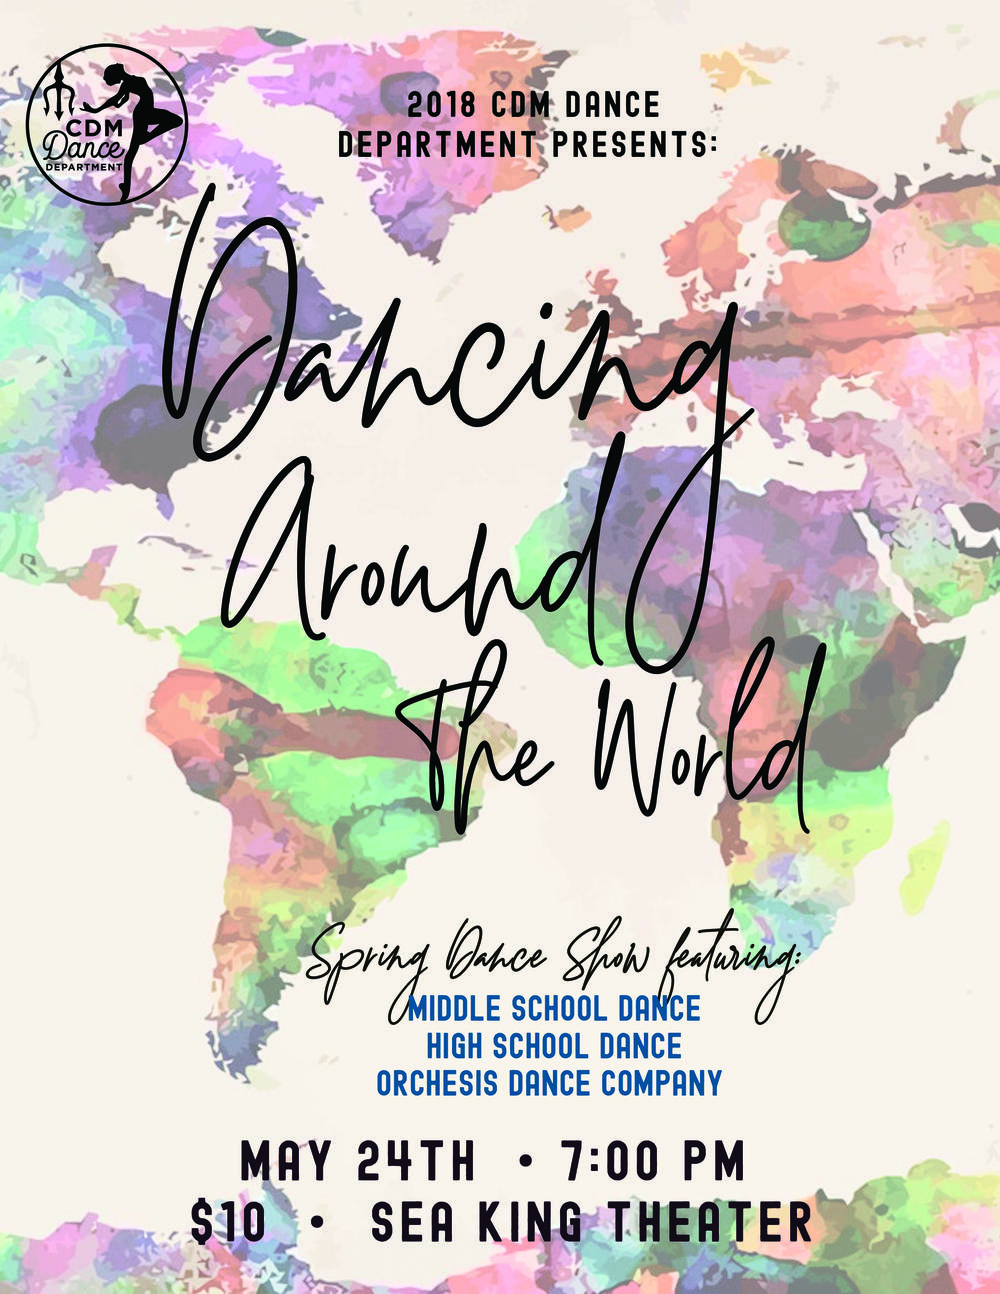 flyer for Corona del Mar spring dance show